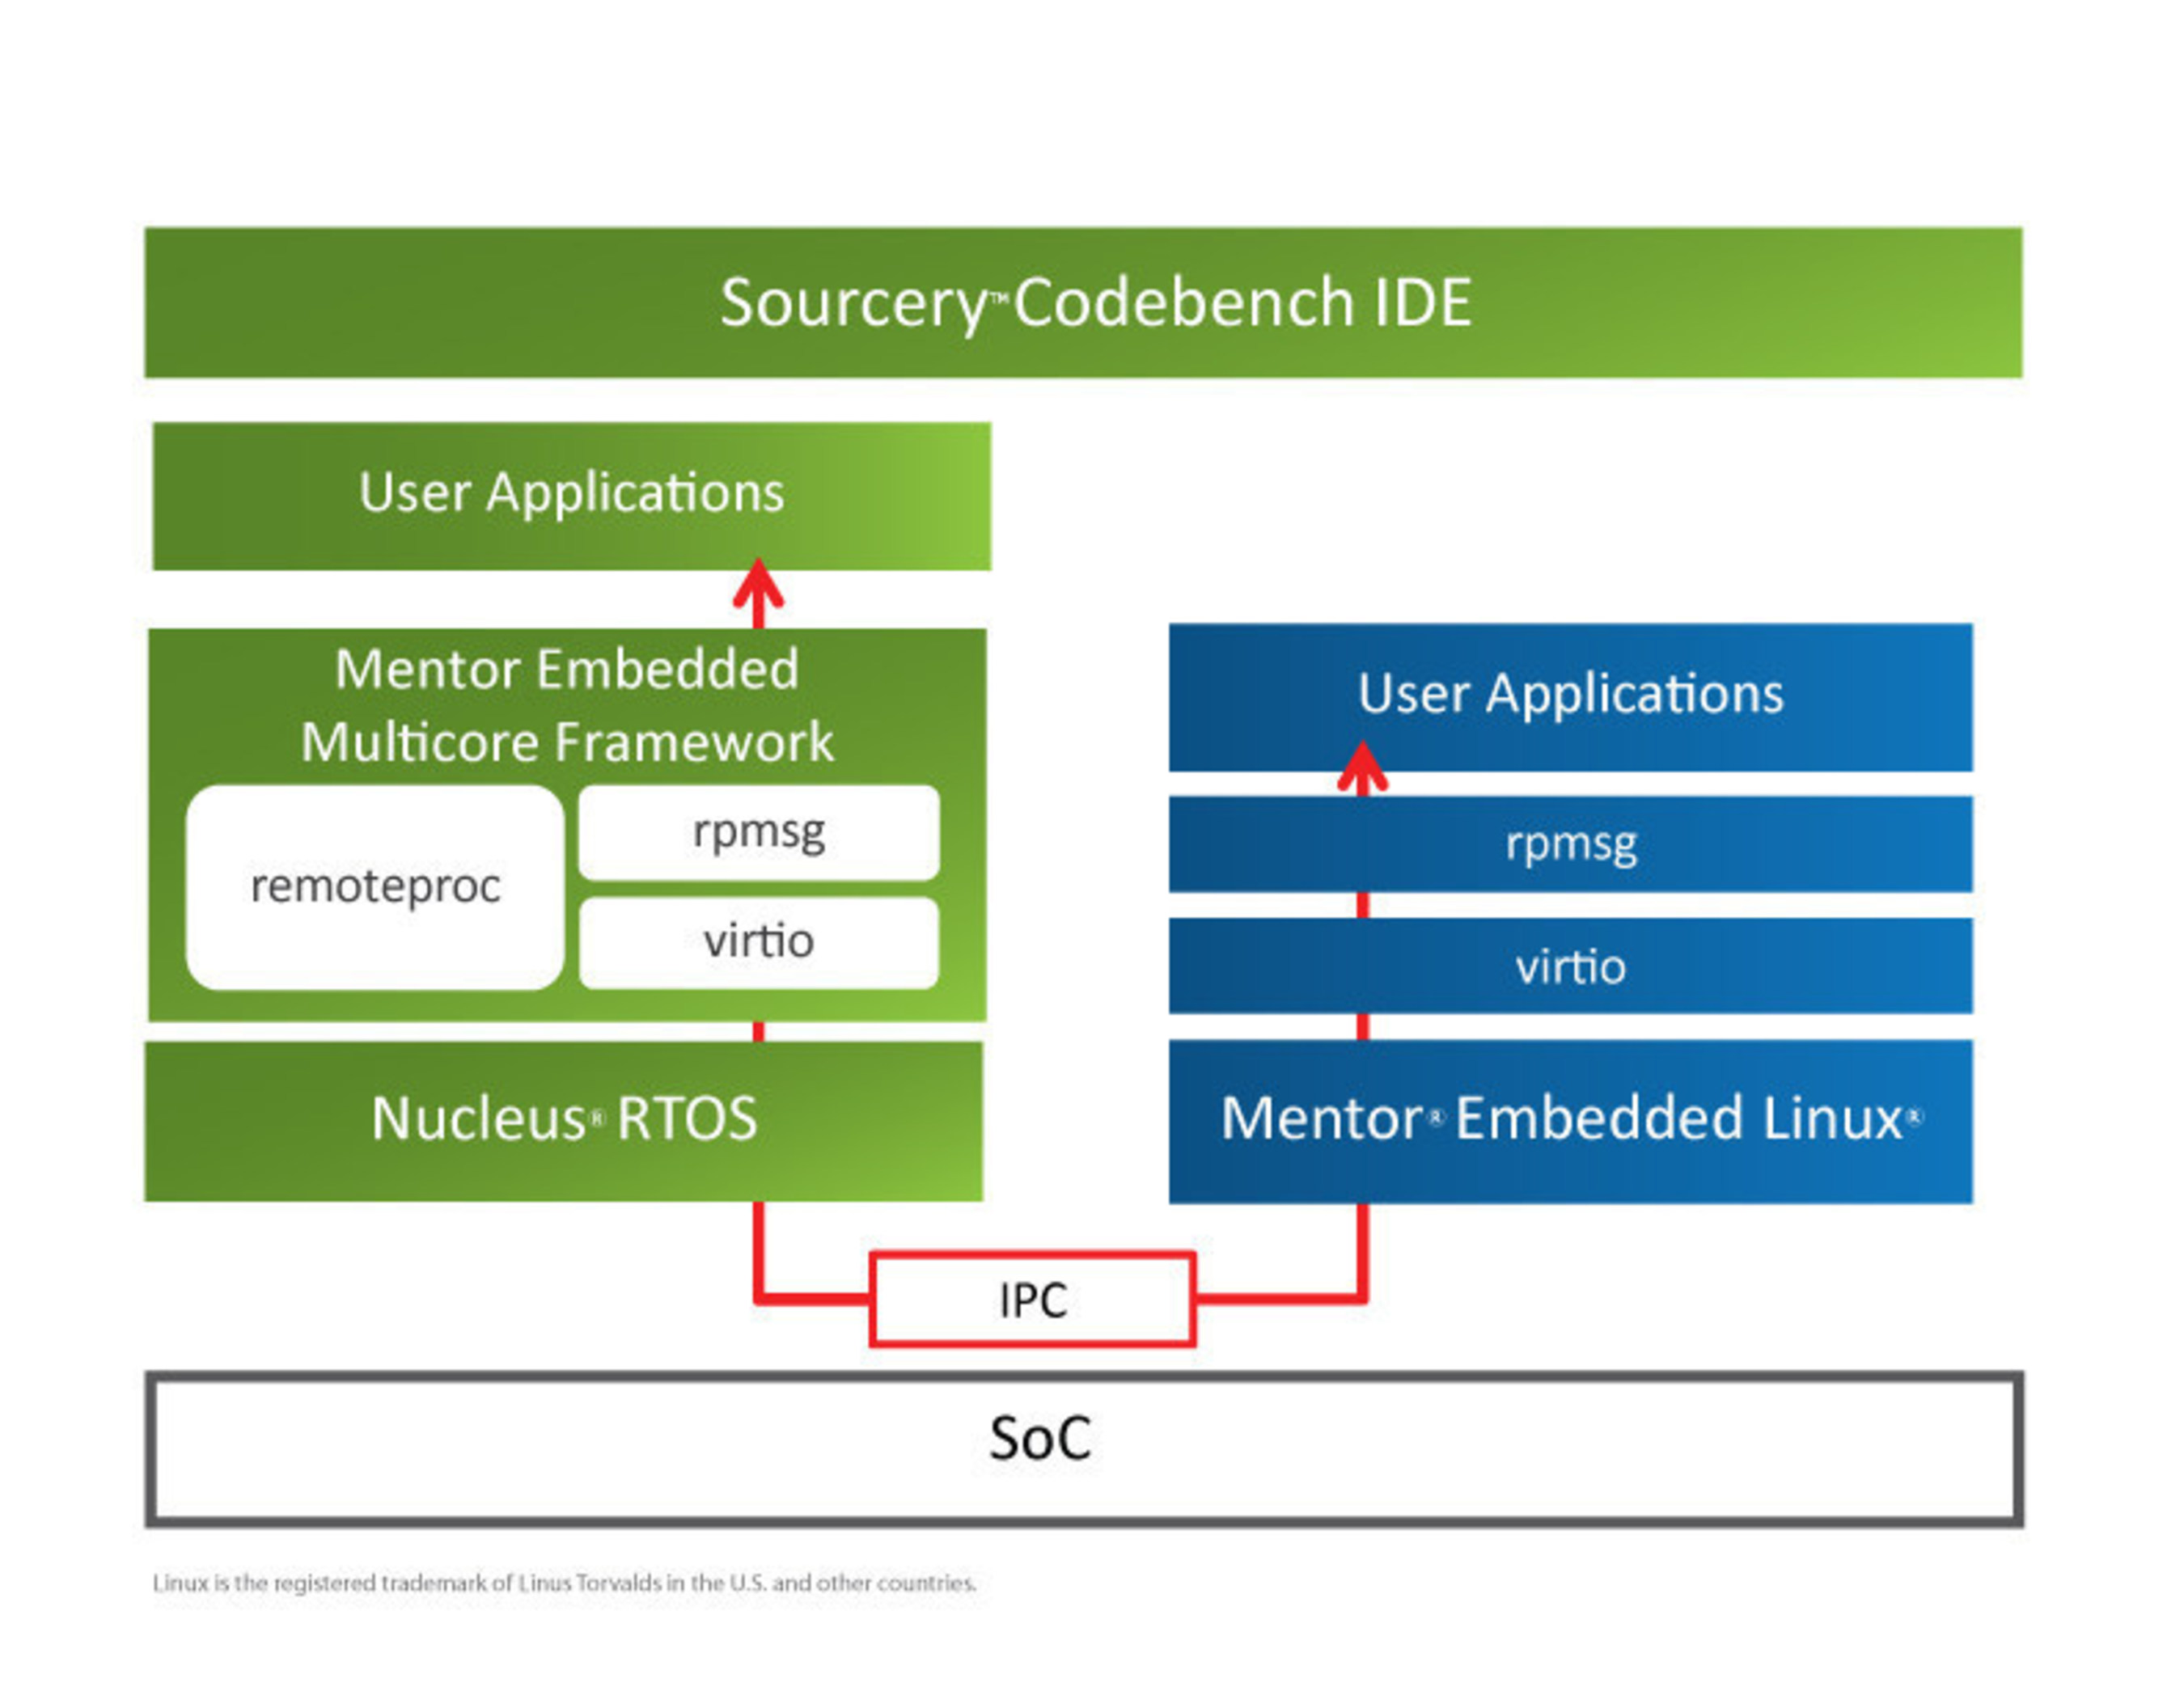 The Mentor Embedded Nucleus RTOS includes the Mentor Embedded Multicore Framework that combines application-class and microcontroller-class cores into a consolidated heterogeneous solution on a single device. This is the industry's first complete asymmetric multi-processing (AMP) heterogeneous solution. (PRNewsFoto/Mentor Graphics Corporation)